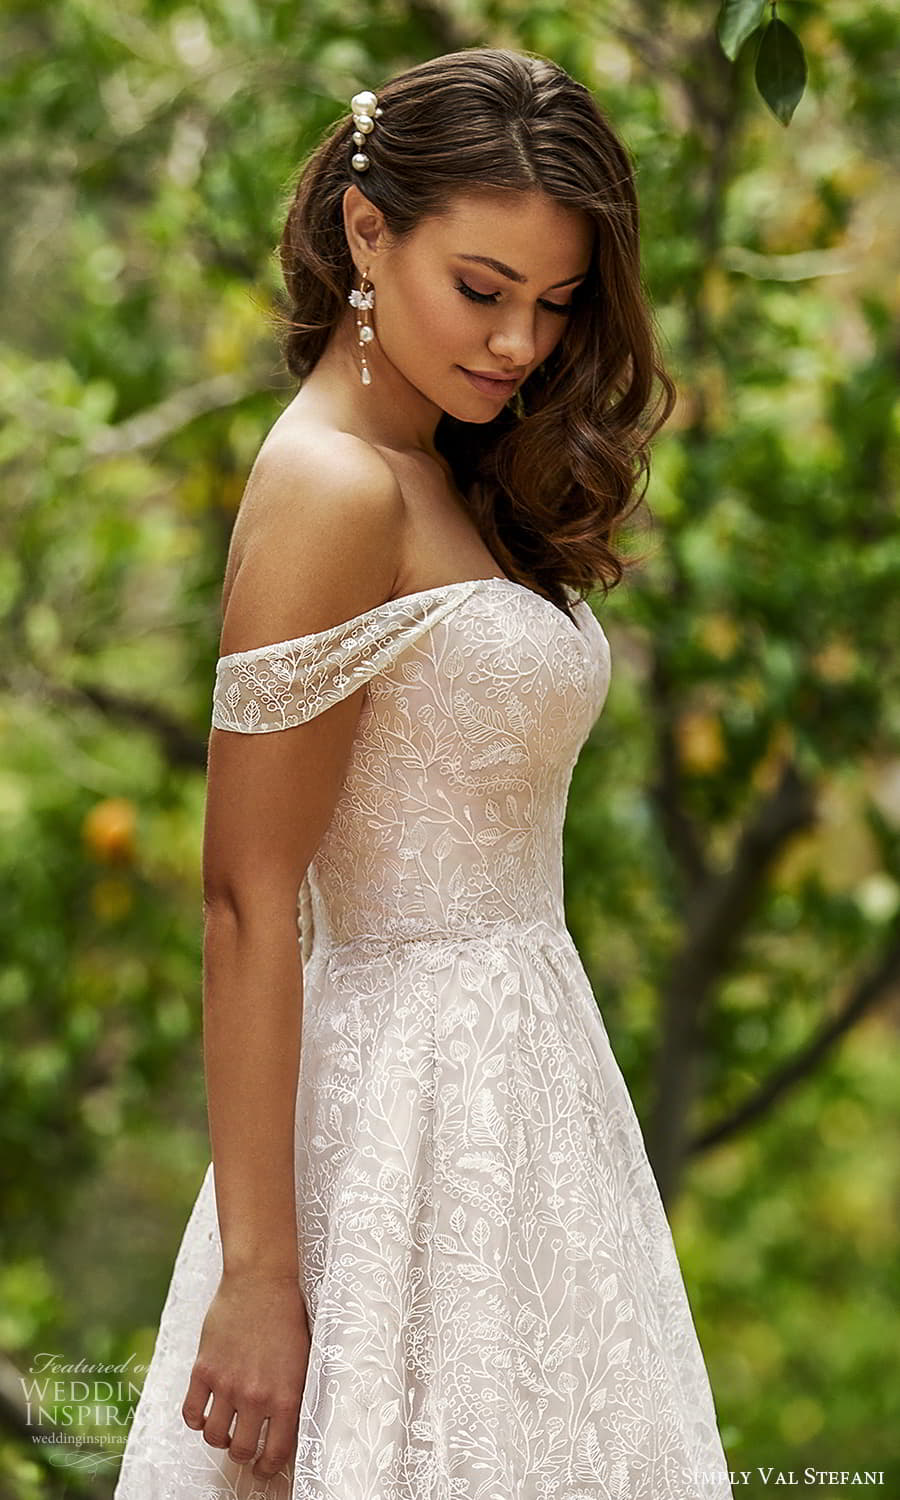 simply val stefani spring 2022 bridal off shoulder straps sweetheart neckline fully embellished lace a line ball gown wedding dress chapel train (8) zsv